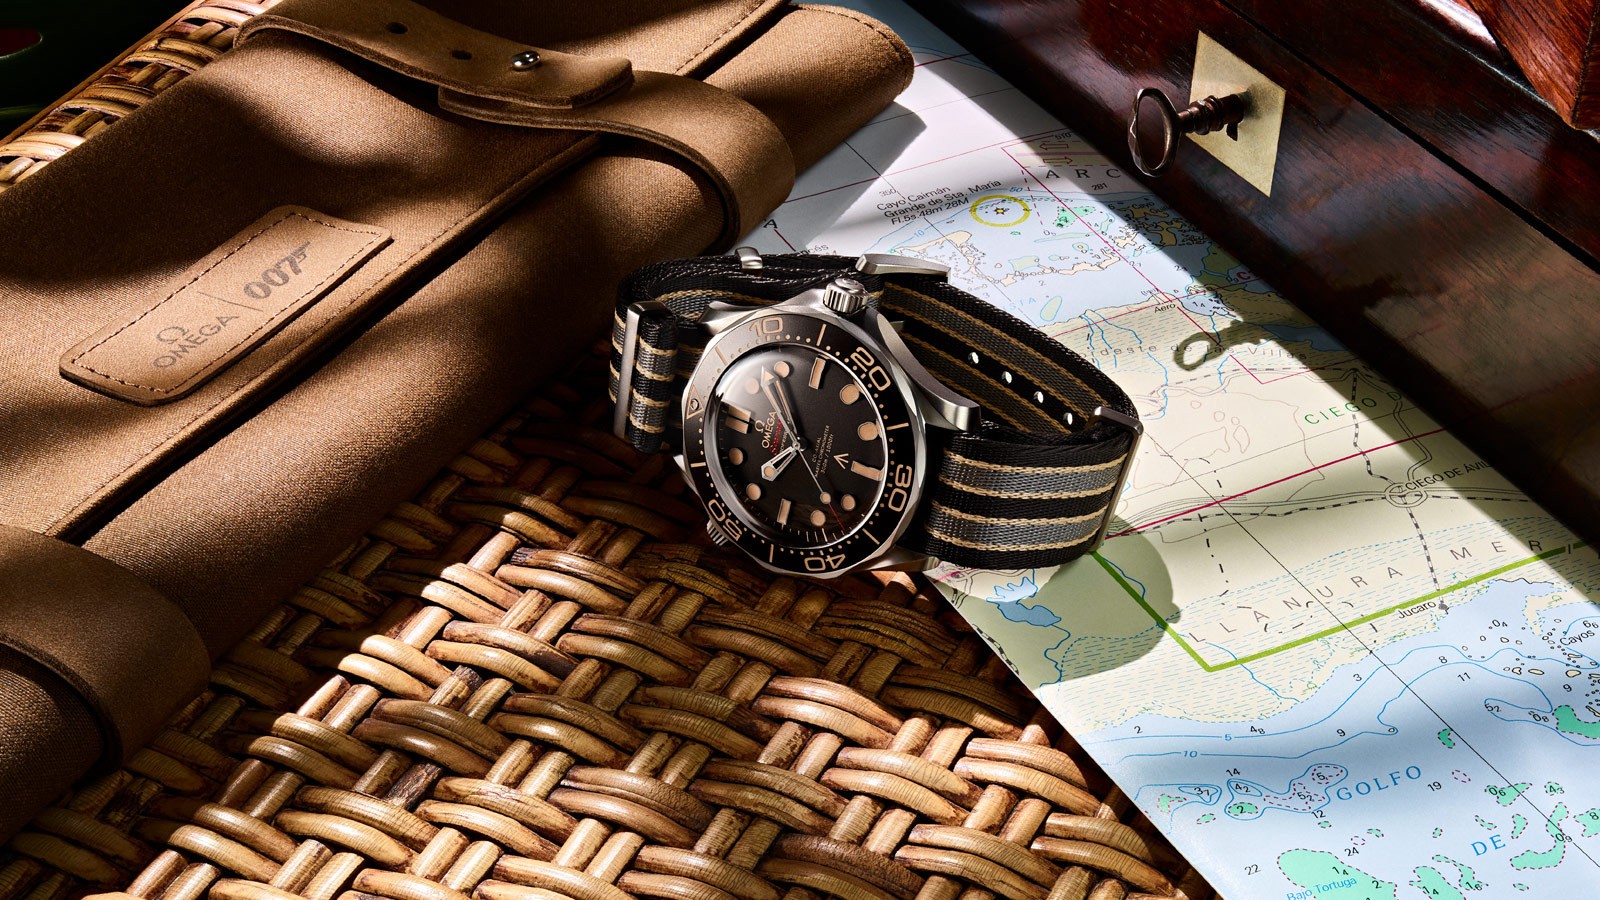 Seamaster Diver 300M Diver 300M Omega Co‑Axial Master Chronometer 42mm Watch - 210.92.42.20.01.001